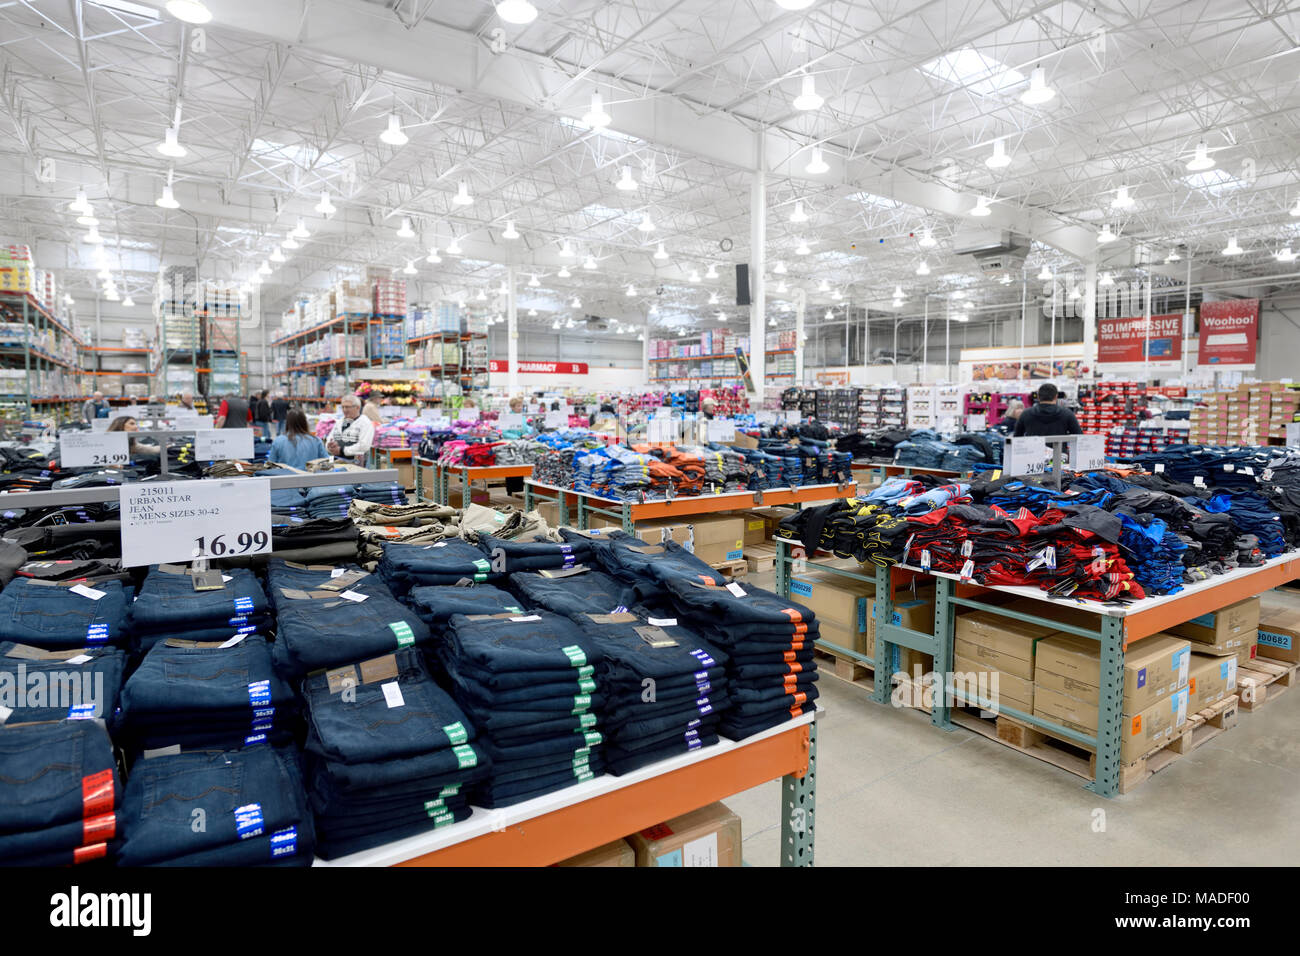 Costco Wholesale membership warehouse store interior, jeans at the mens clothing section. British Columbia, Canada 2017. Stock Photo